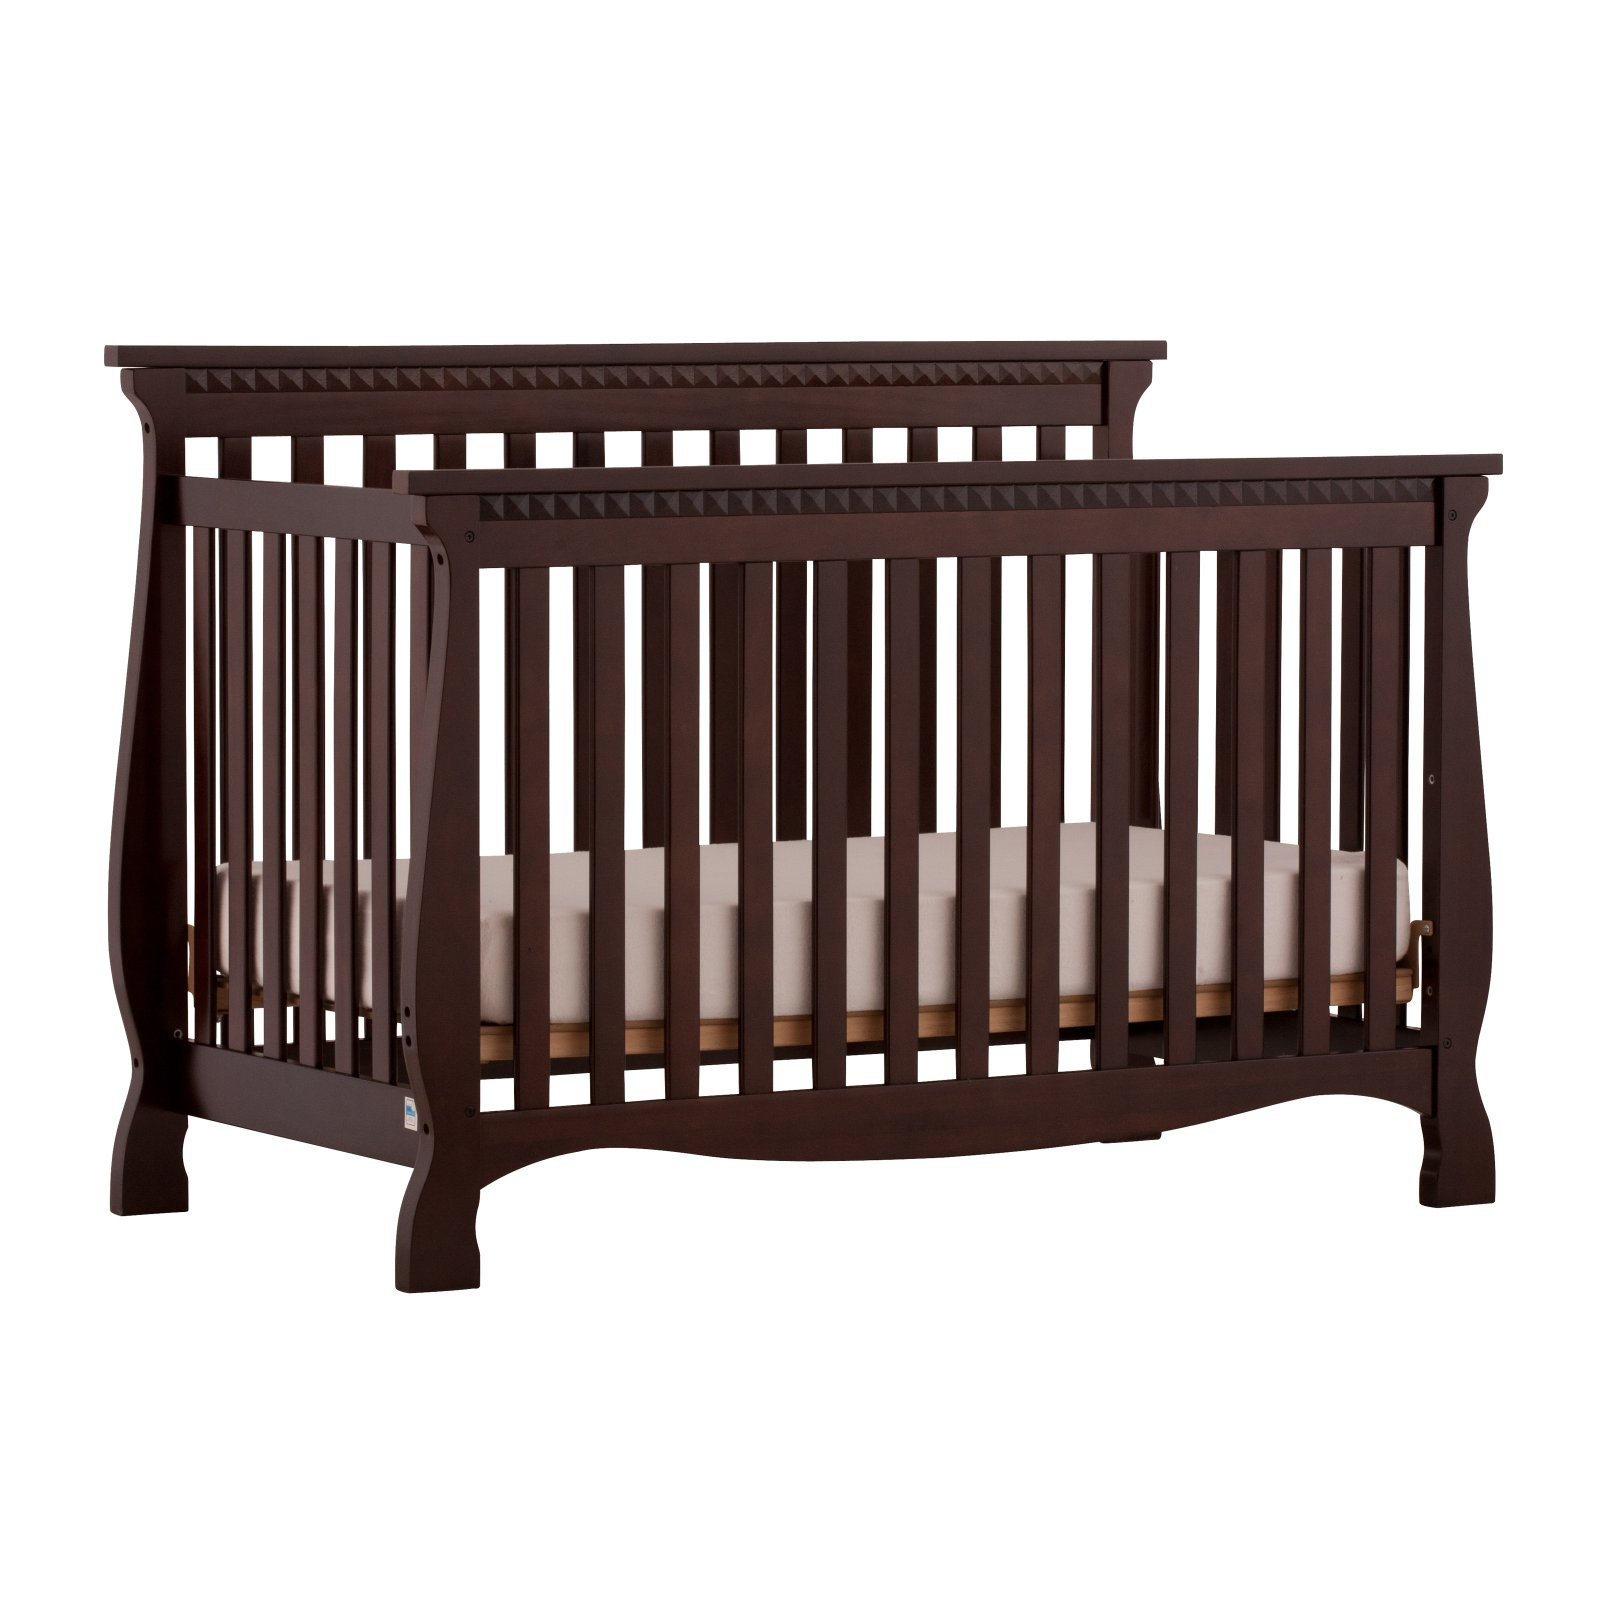 Storkcraft Venetian 4 in 1 Convertible Crib Espresso